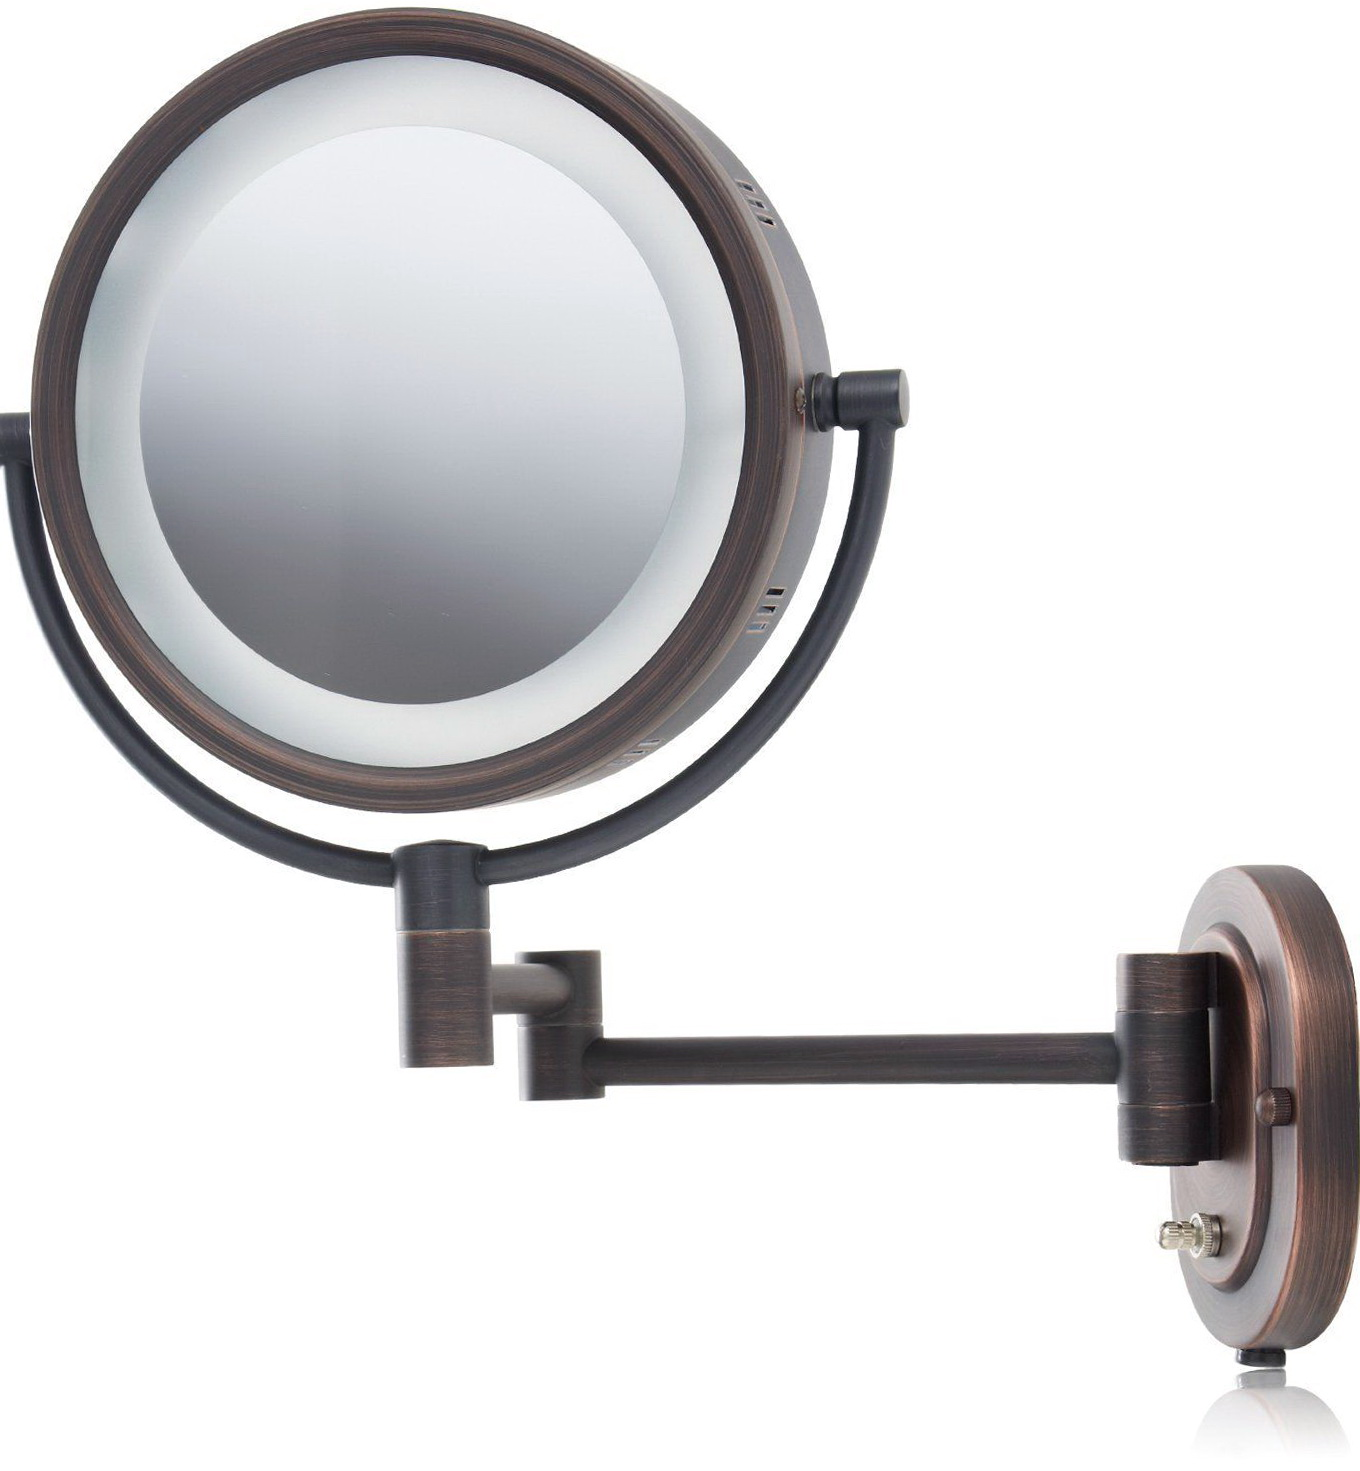 Wall mounted lighted makeup mirror 10x home design ideas for Wall mounted mirror